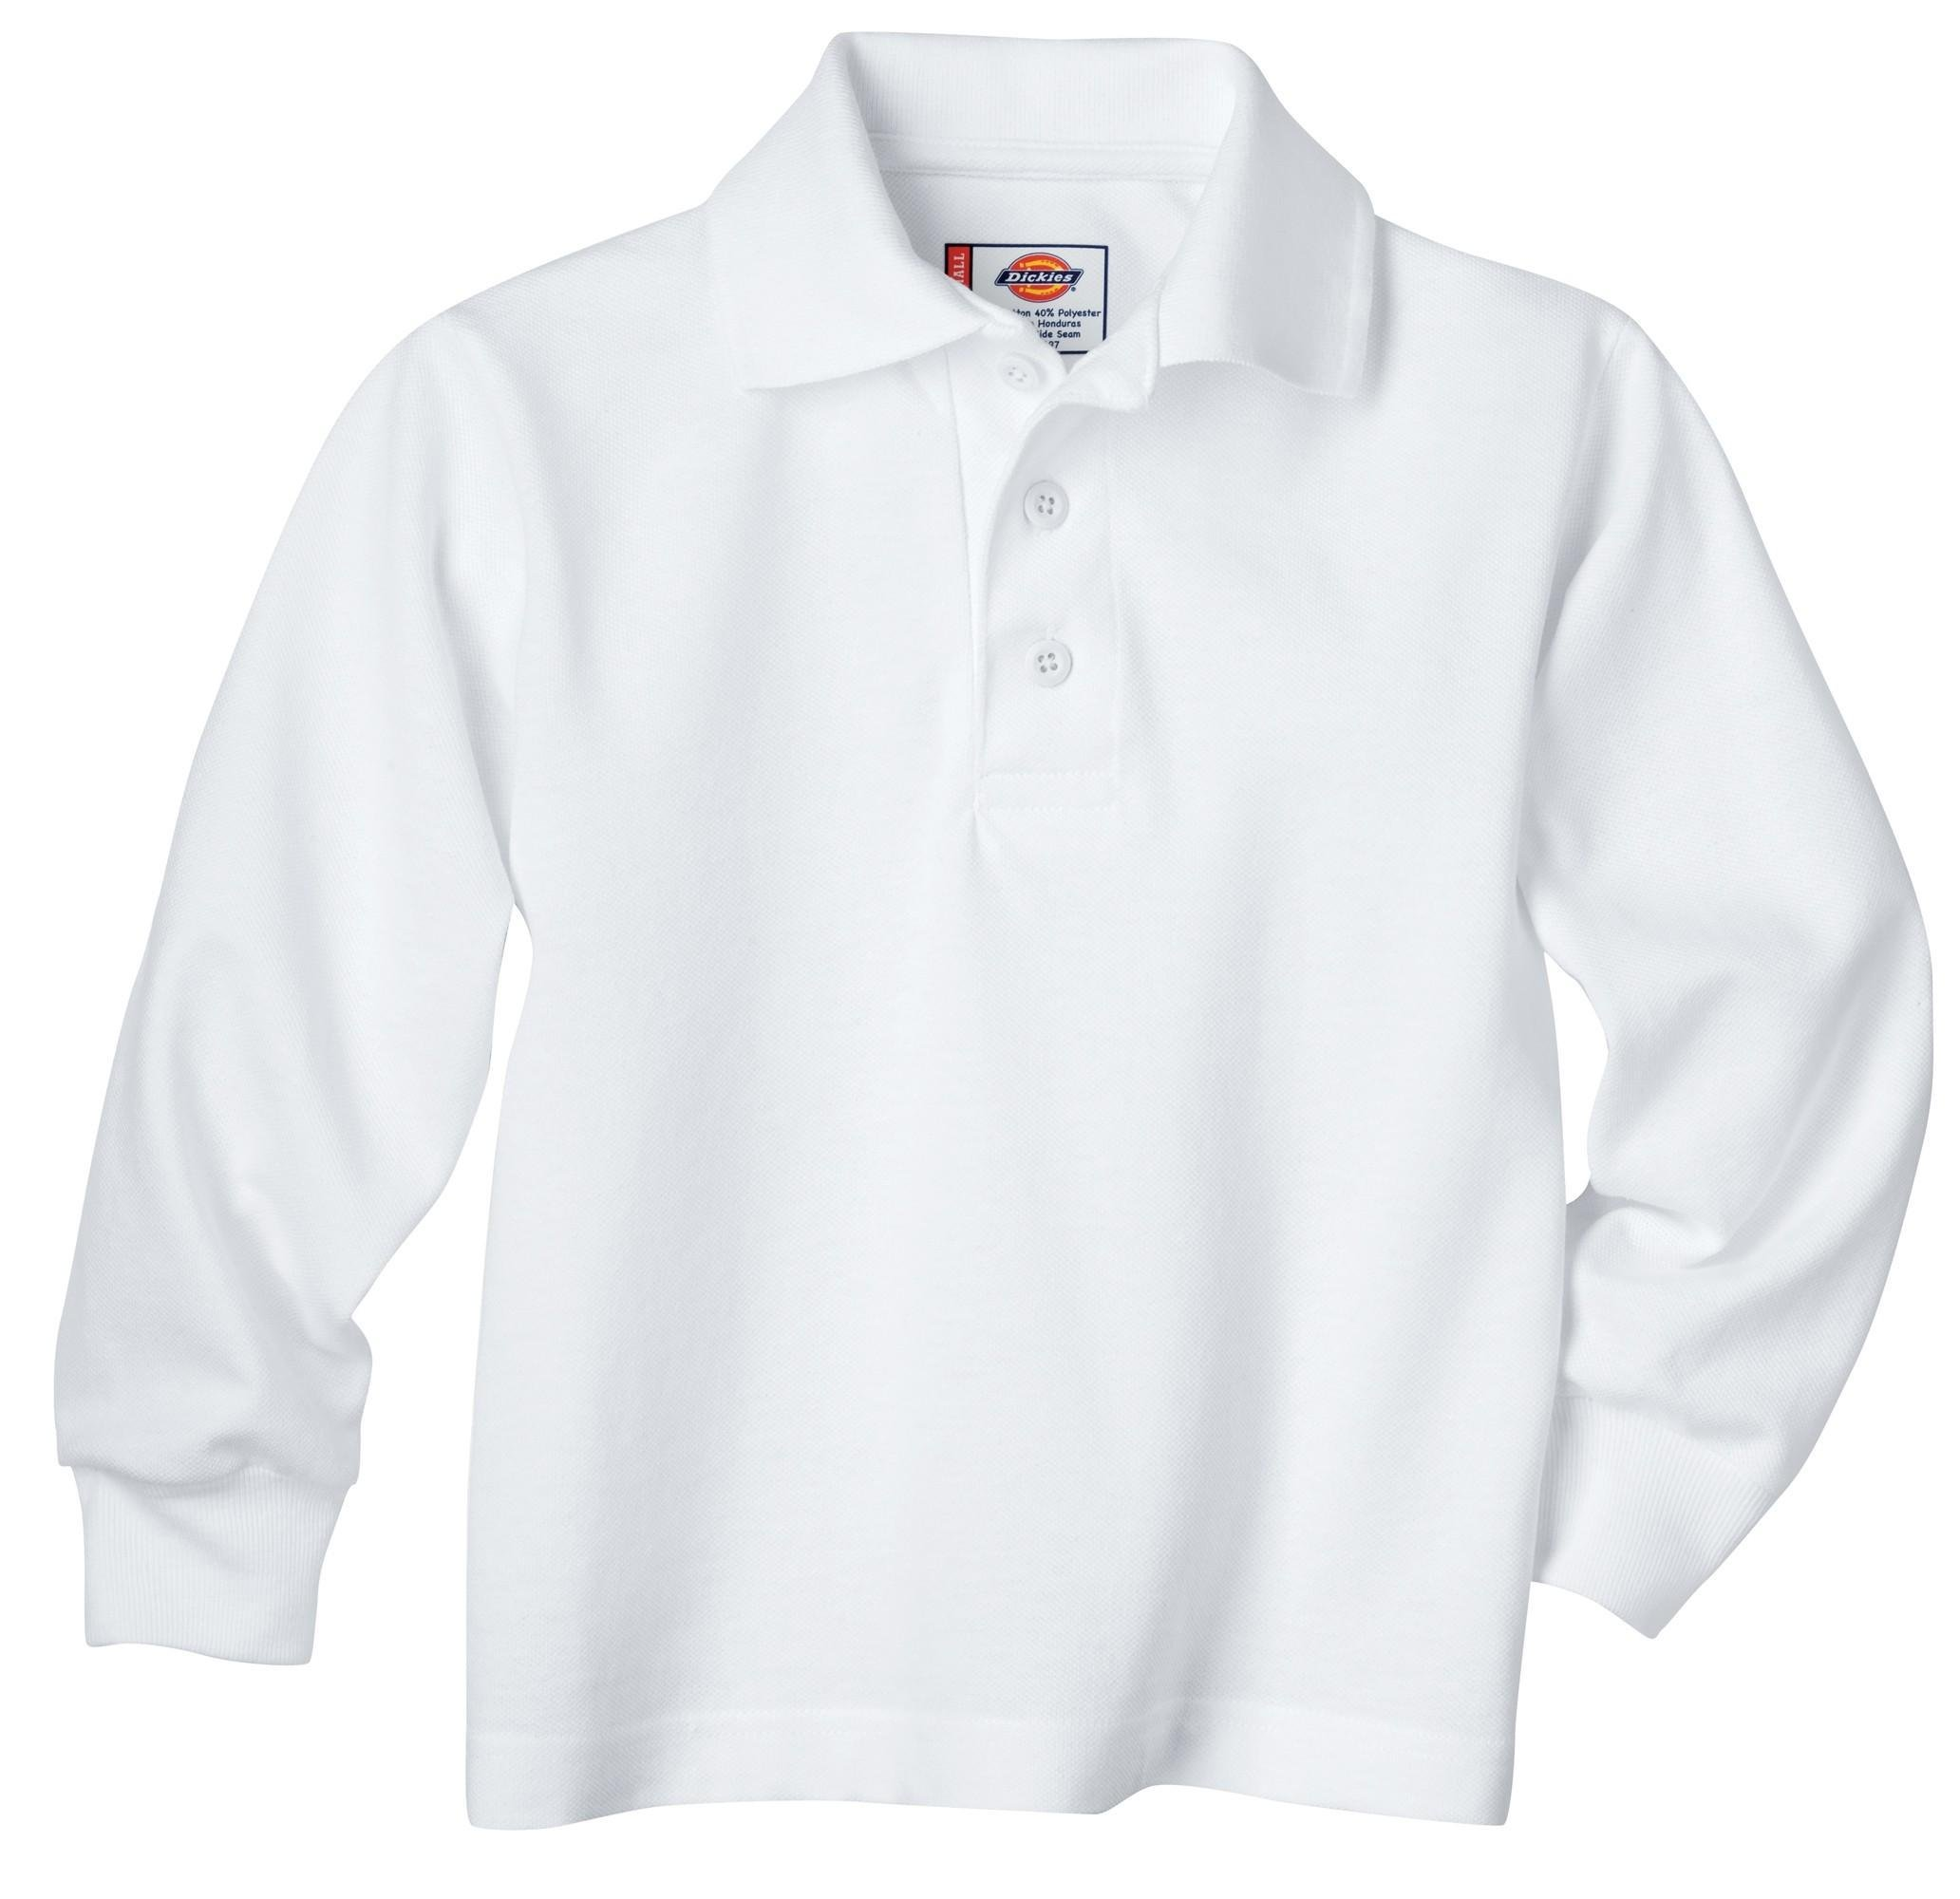 Dickies Big Boys' Uniform Long Sleeve Performance Polo Shirt, White, Large